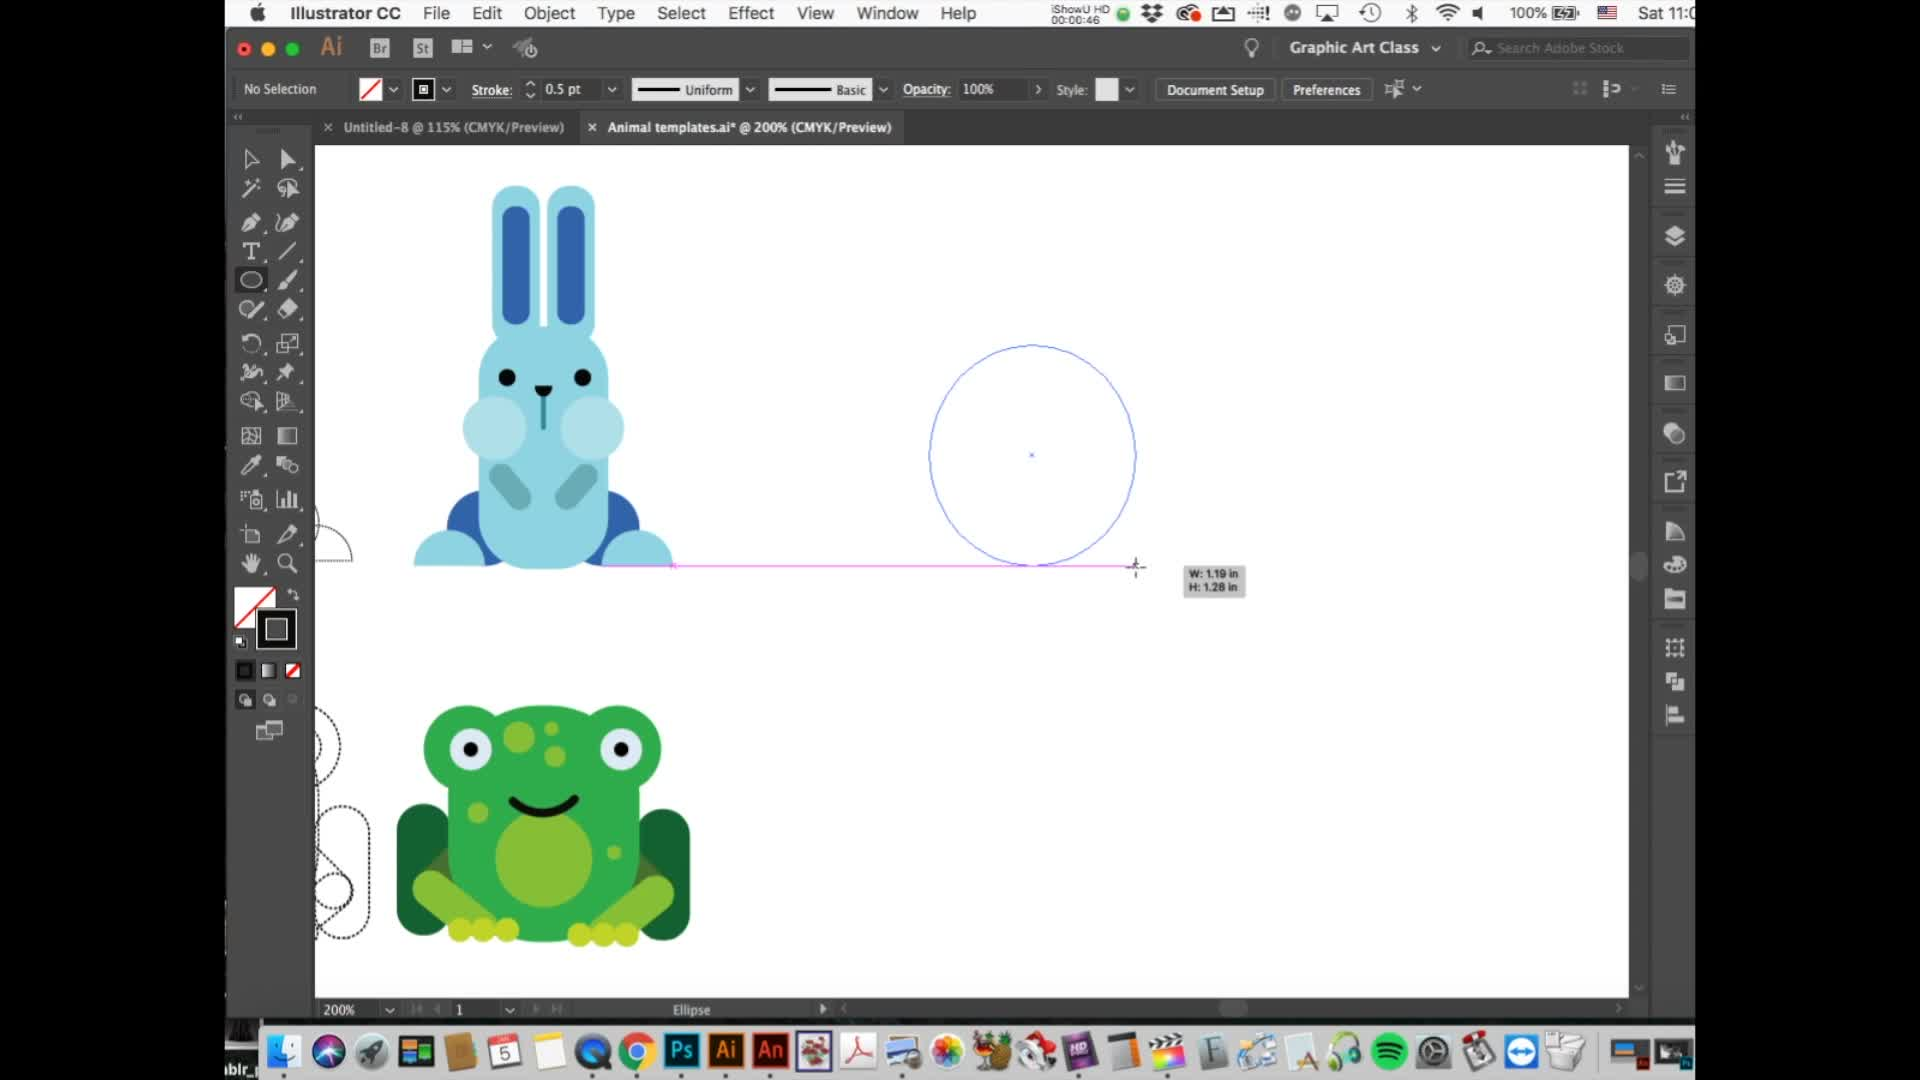 Adobe Illustrator: Basic Shapes and Arranging